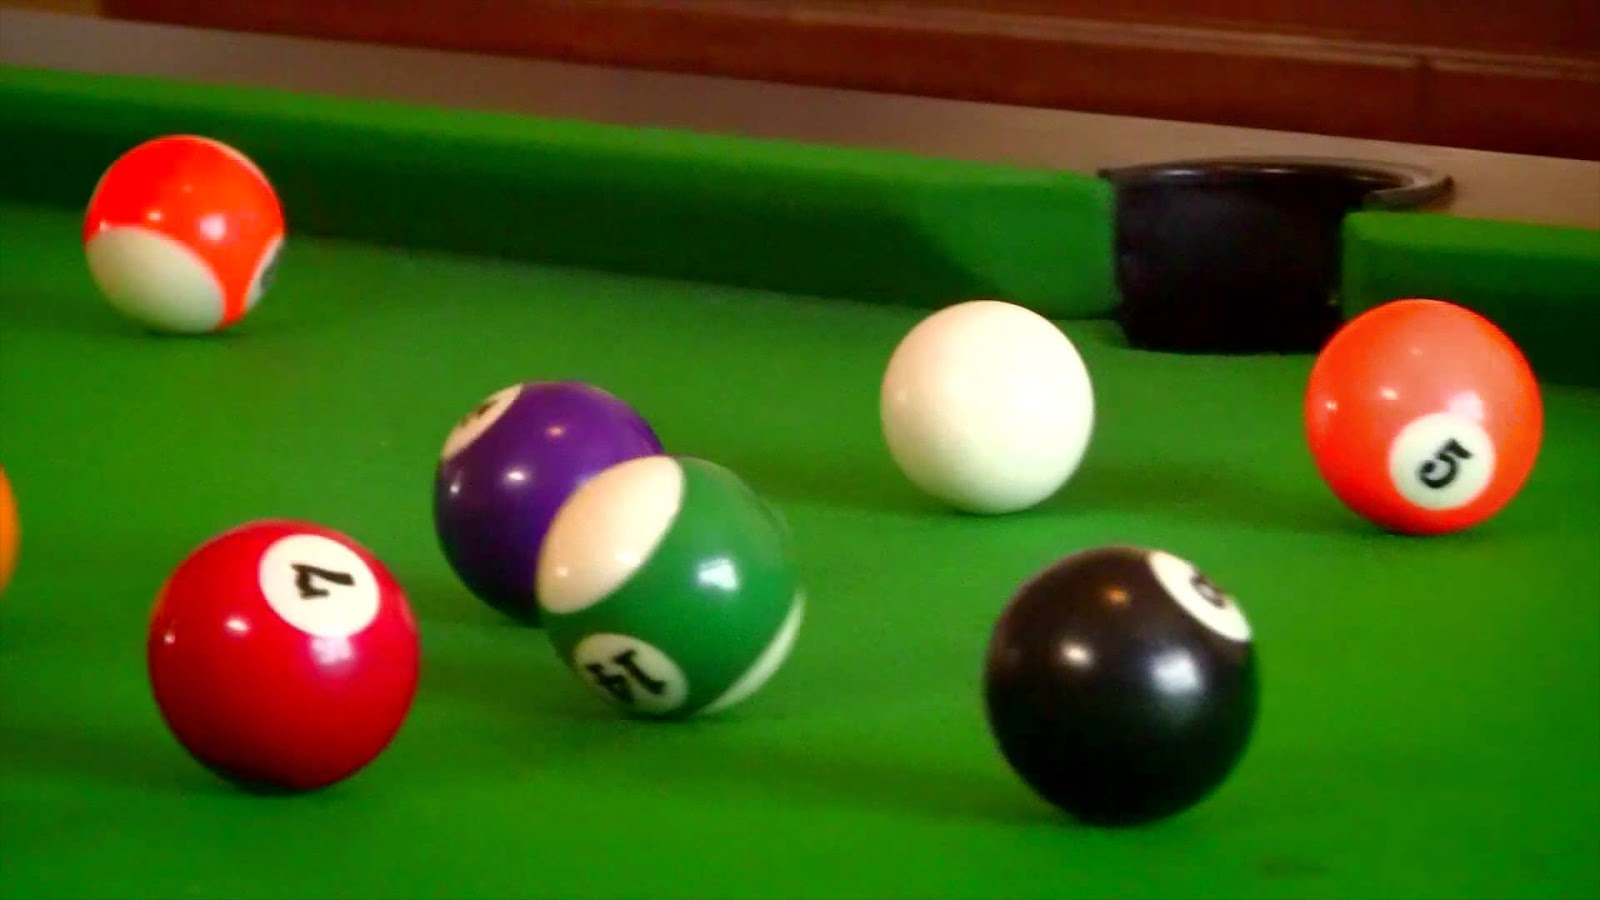 Pool Games For Free : Free download ball pool game for pc desktop and laptop